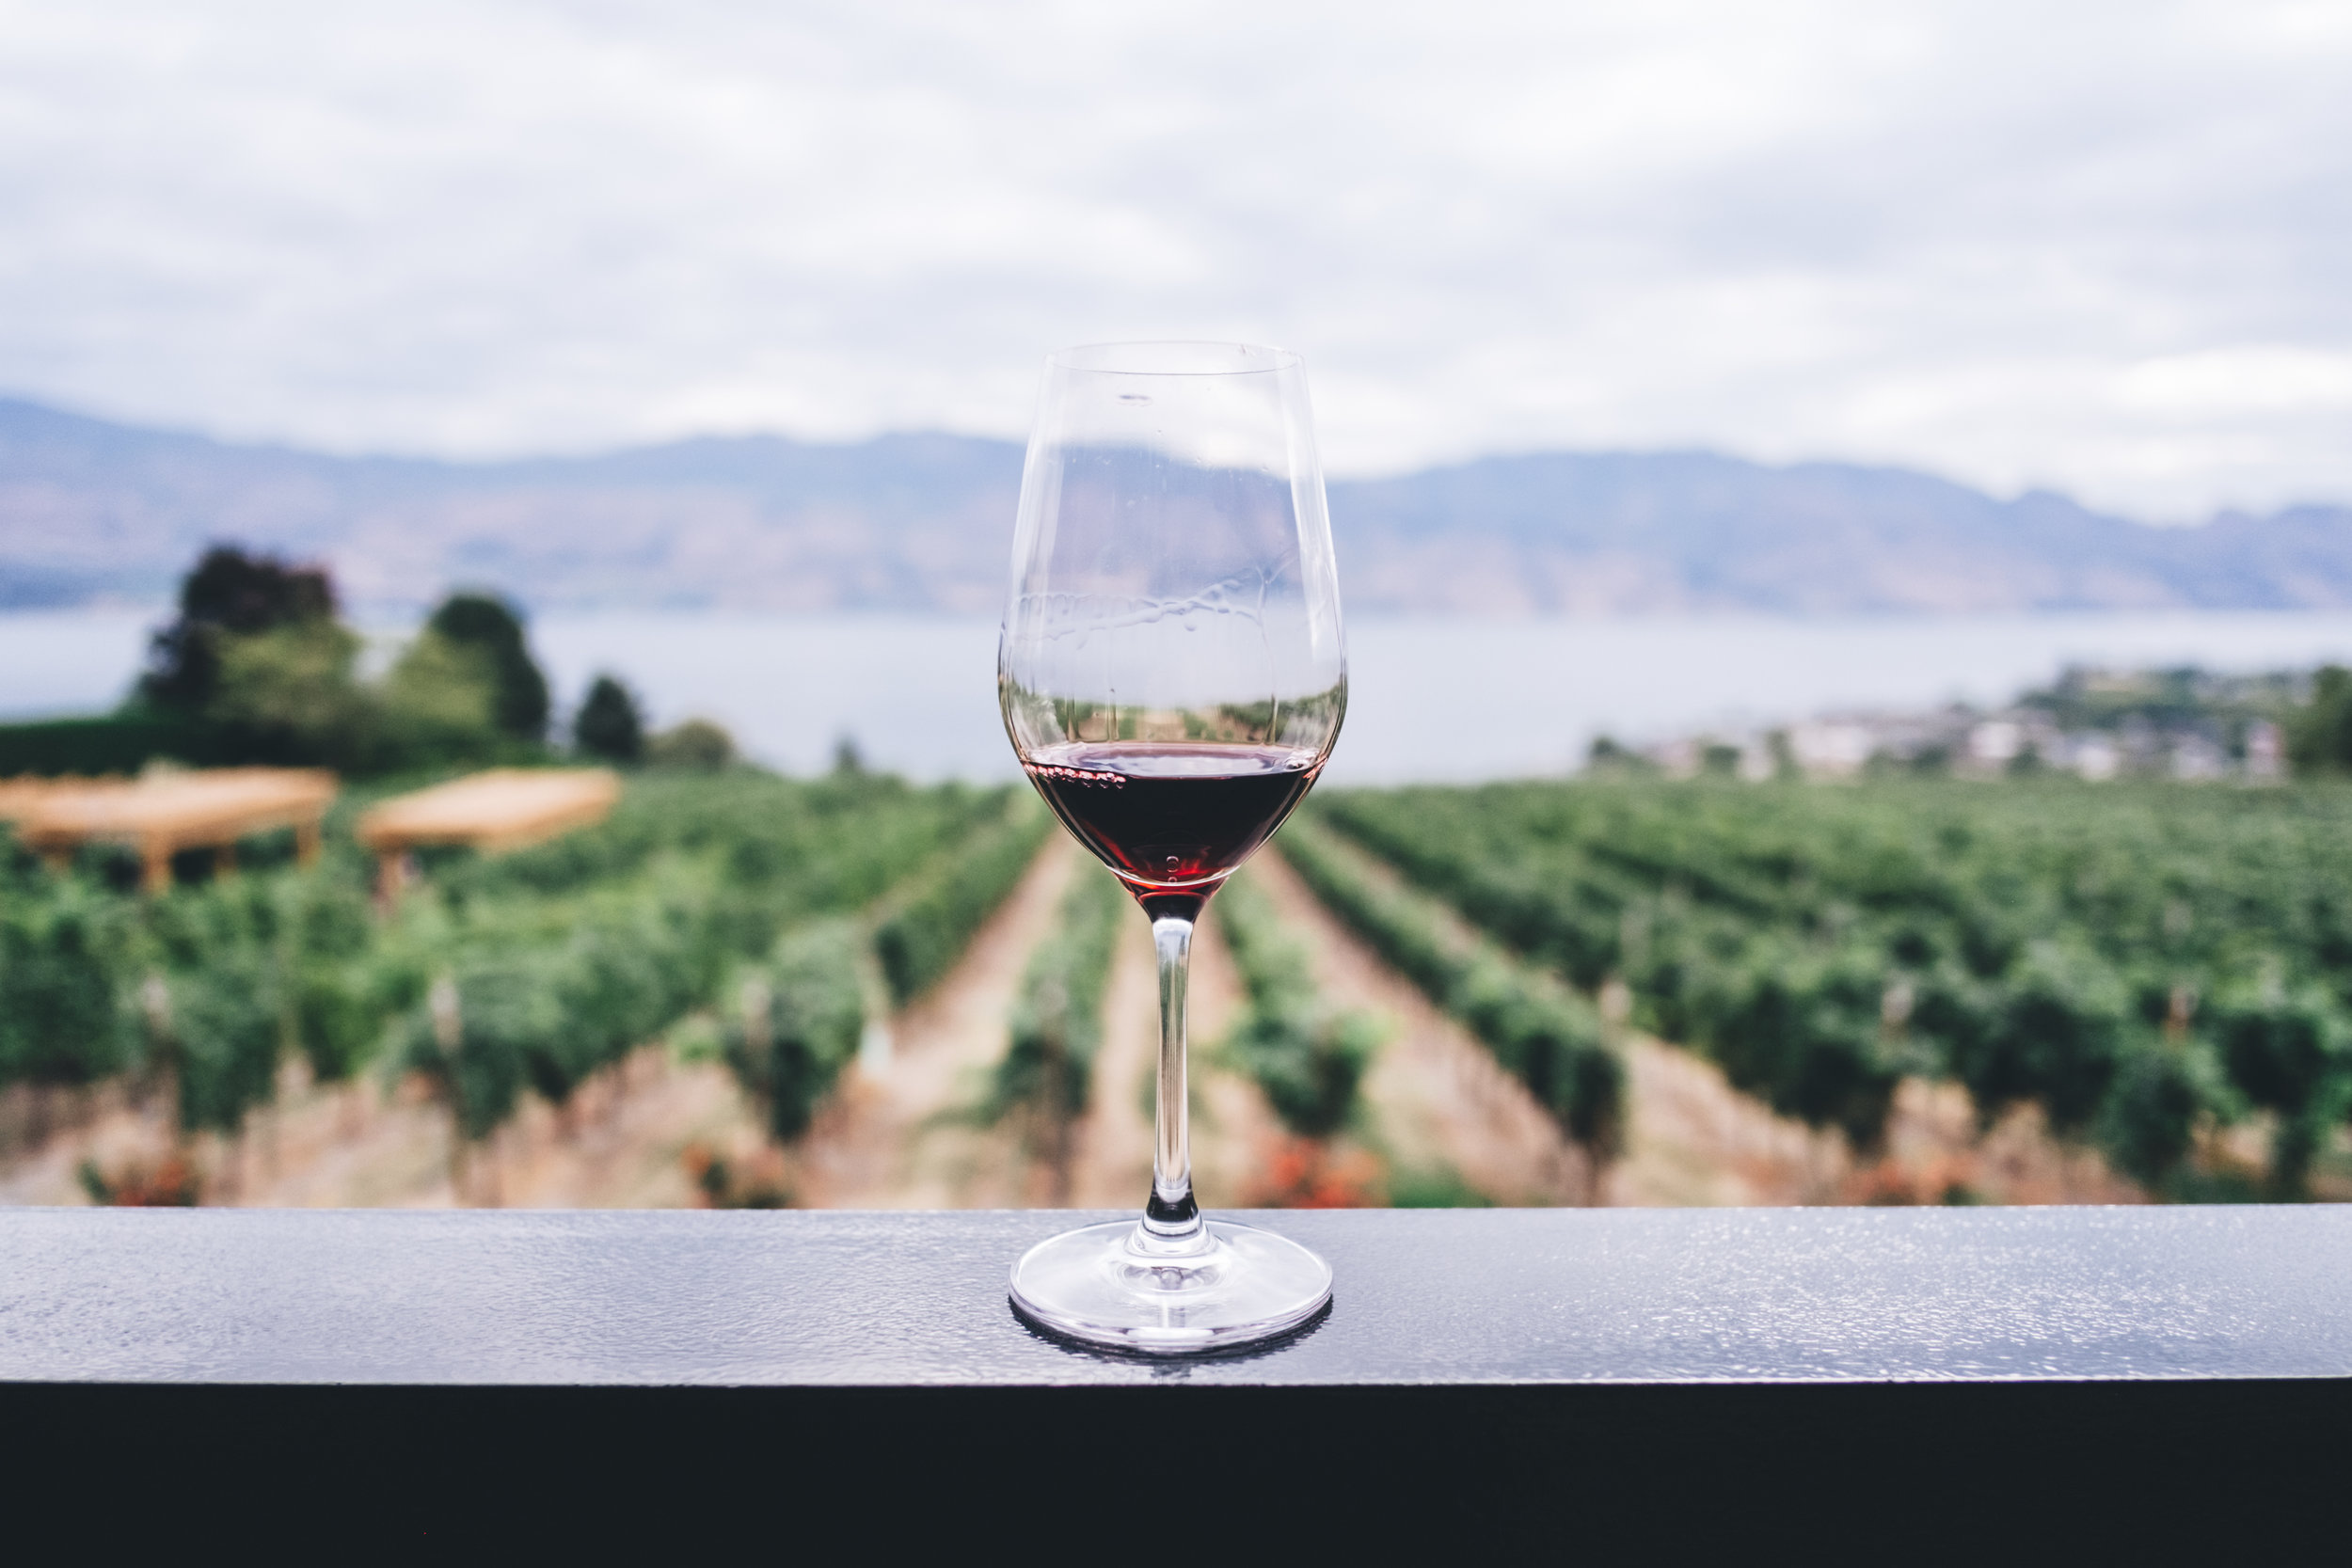 Manson wineries - Manson has the most wineries within walking distance in the county. Take a look at our diverse selection!